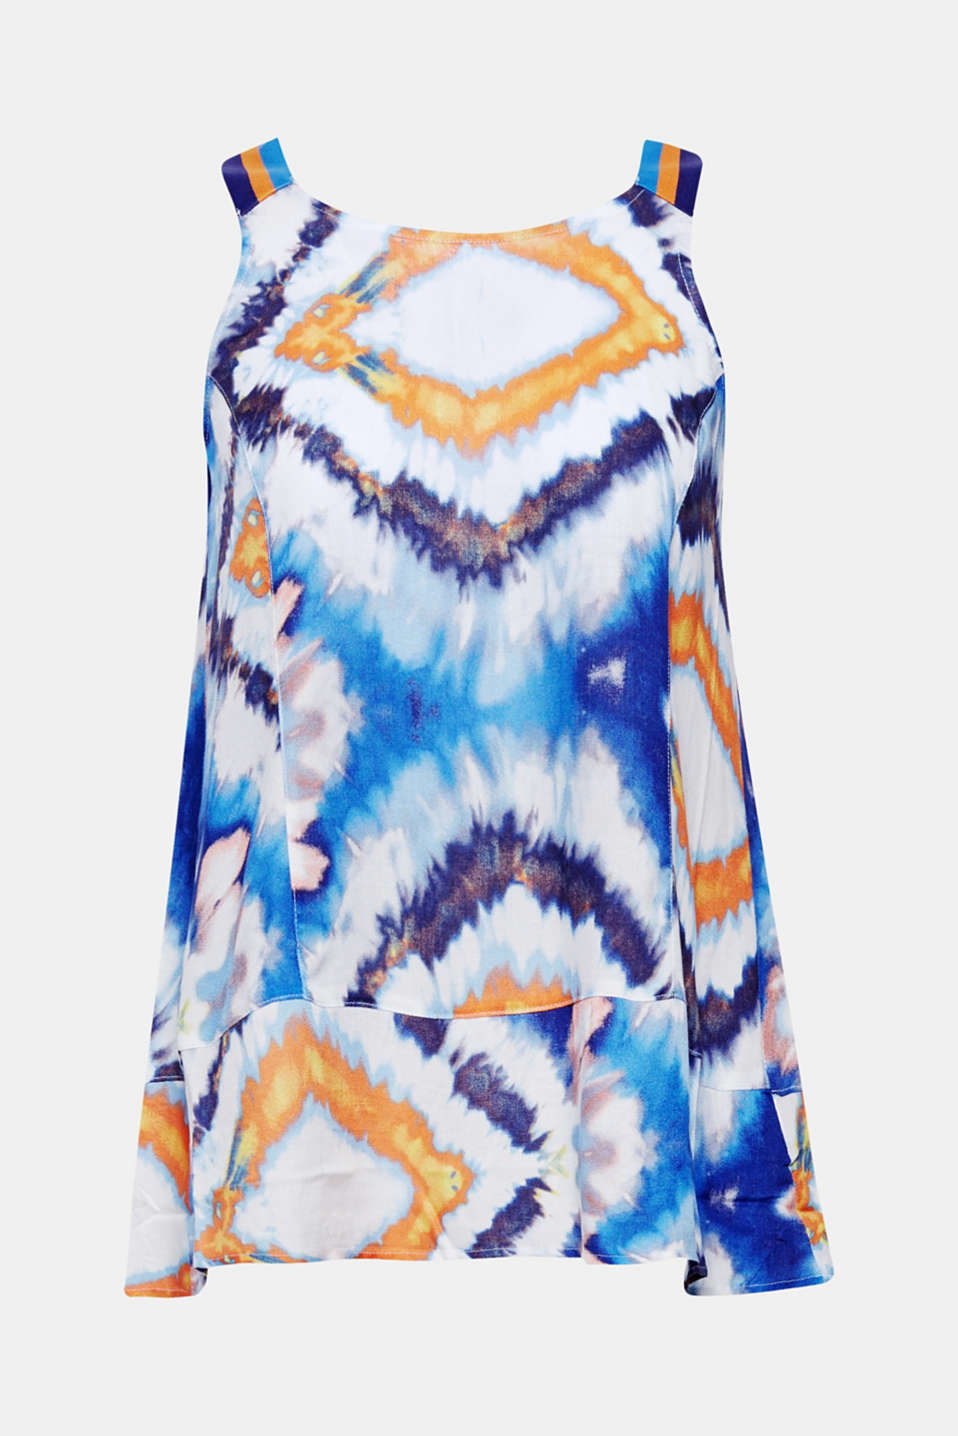 This flared blouse top features light and airy crêpe fabric with a summery batik pattern.